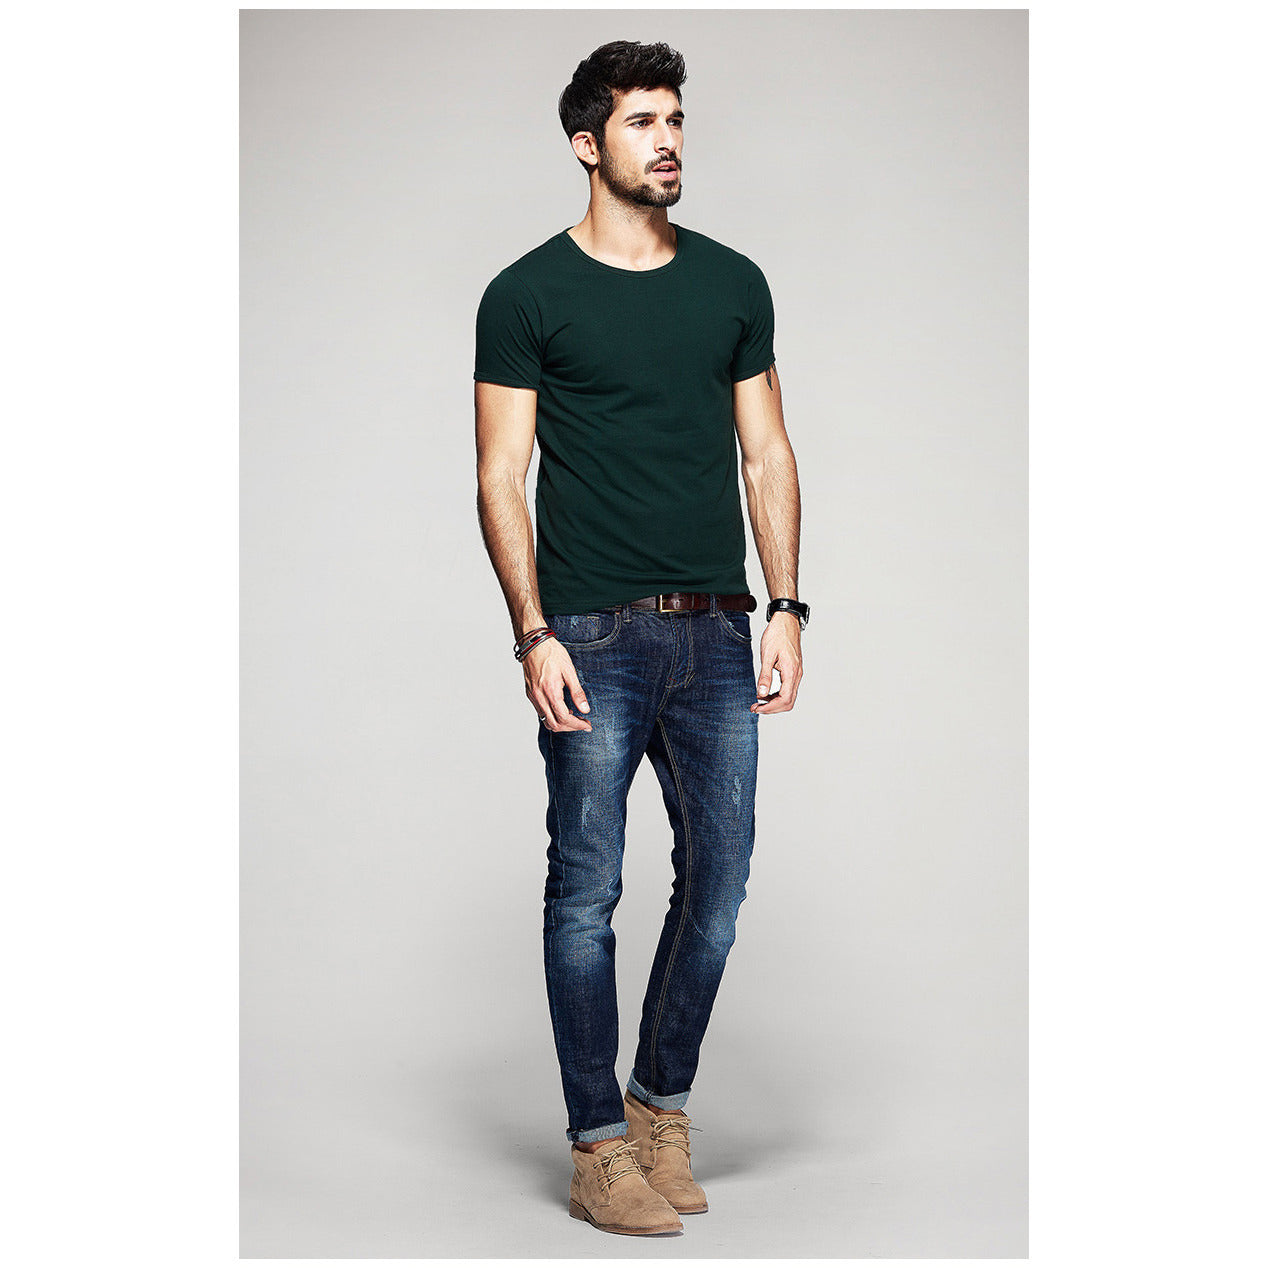 Green Basic Slim Fit Crew Neck T-Shirt - Haberfasher